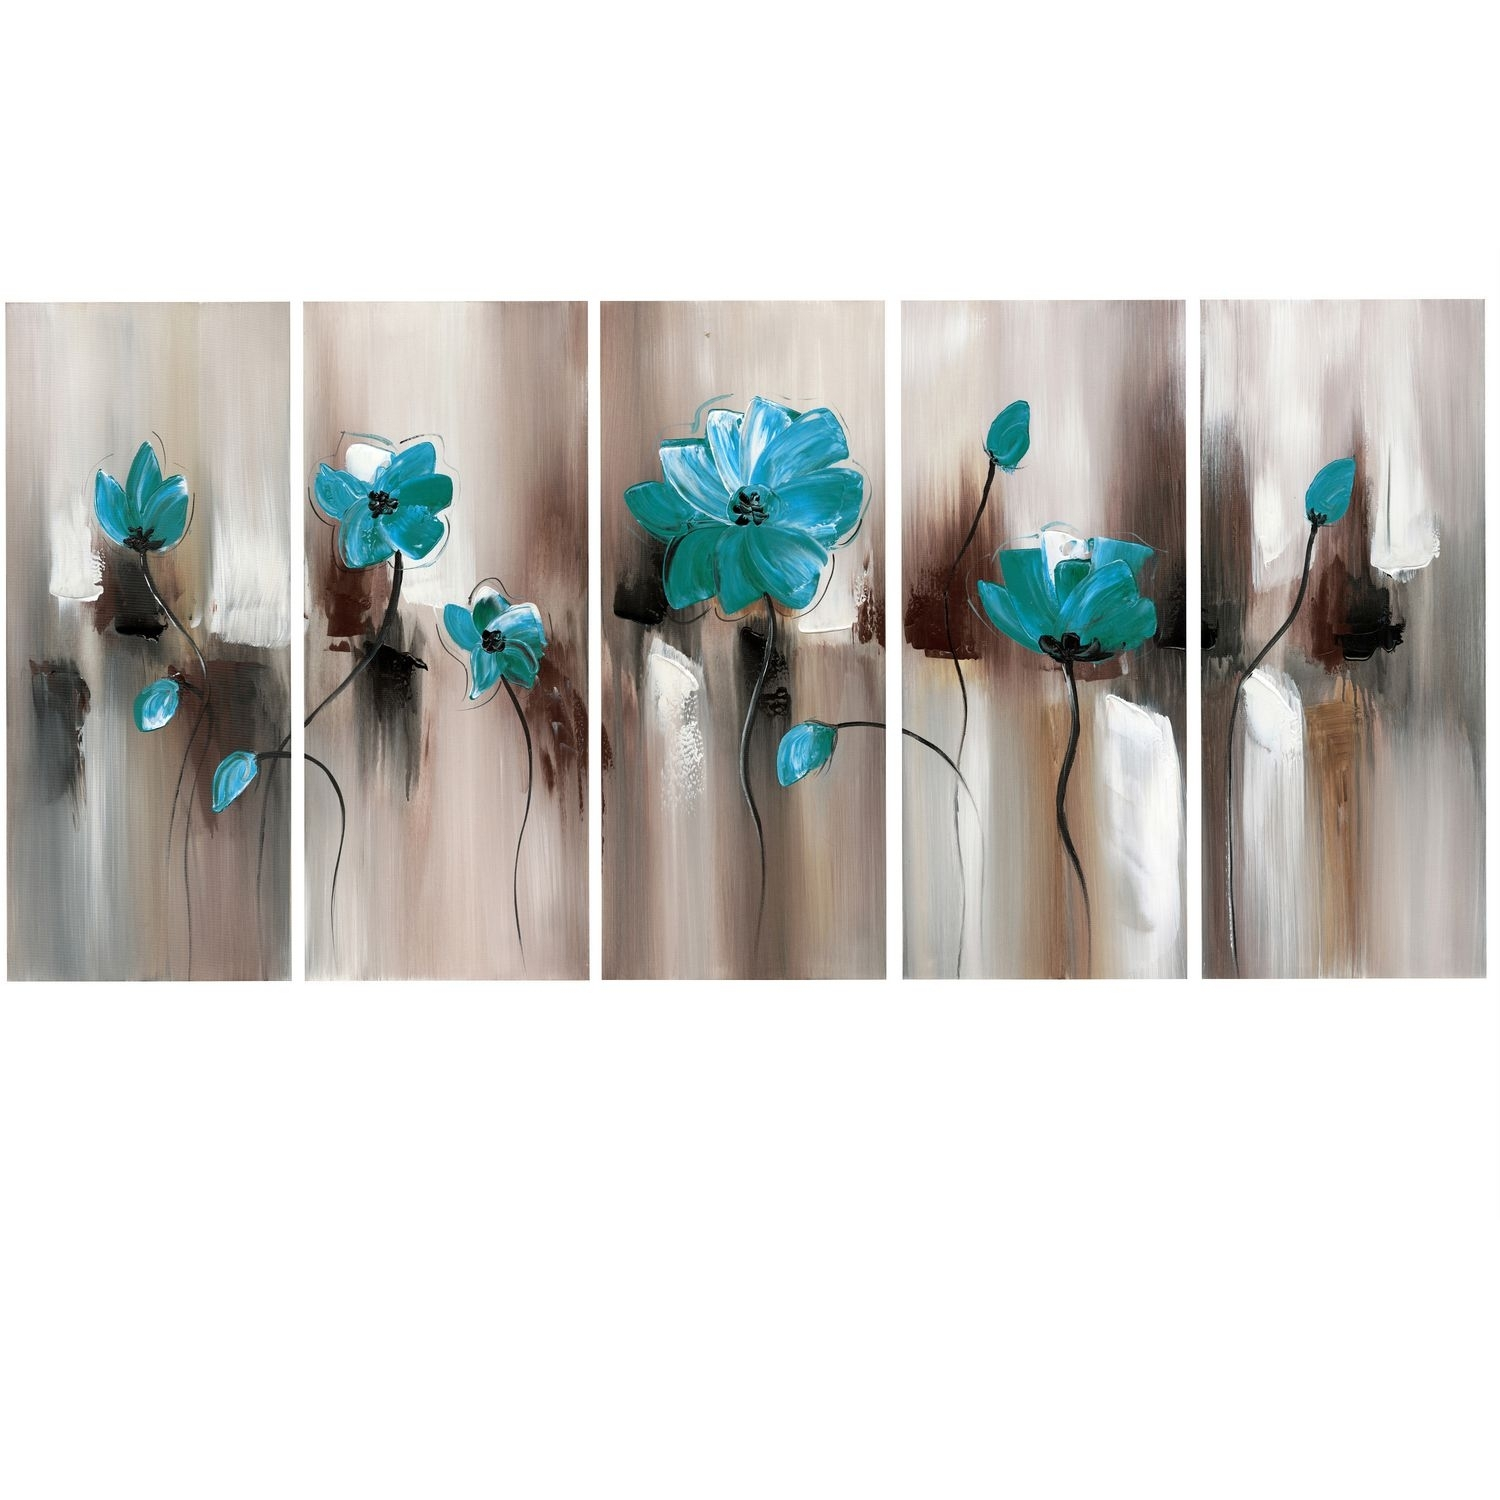 Design Art Green Emerald Modern Flower Art – Gallery Wrapped For Recent Canvas Wall Art In Canada (View 9 of 15)